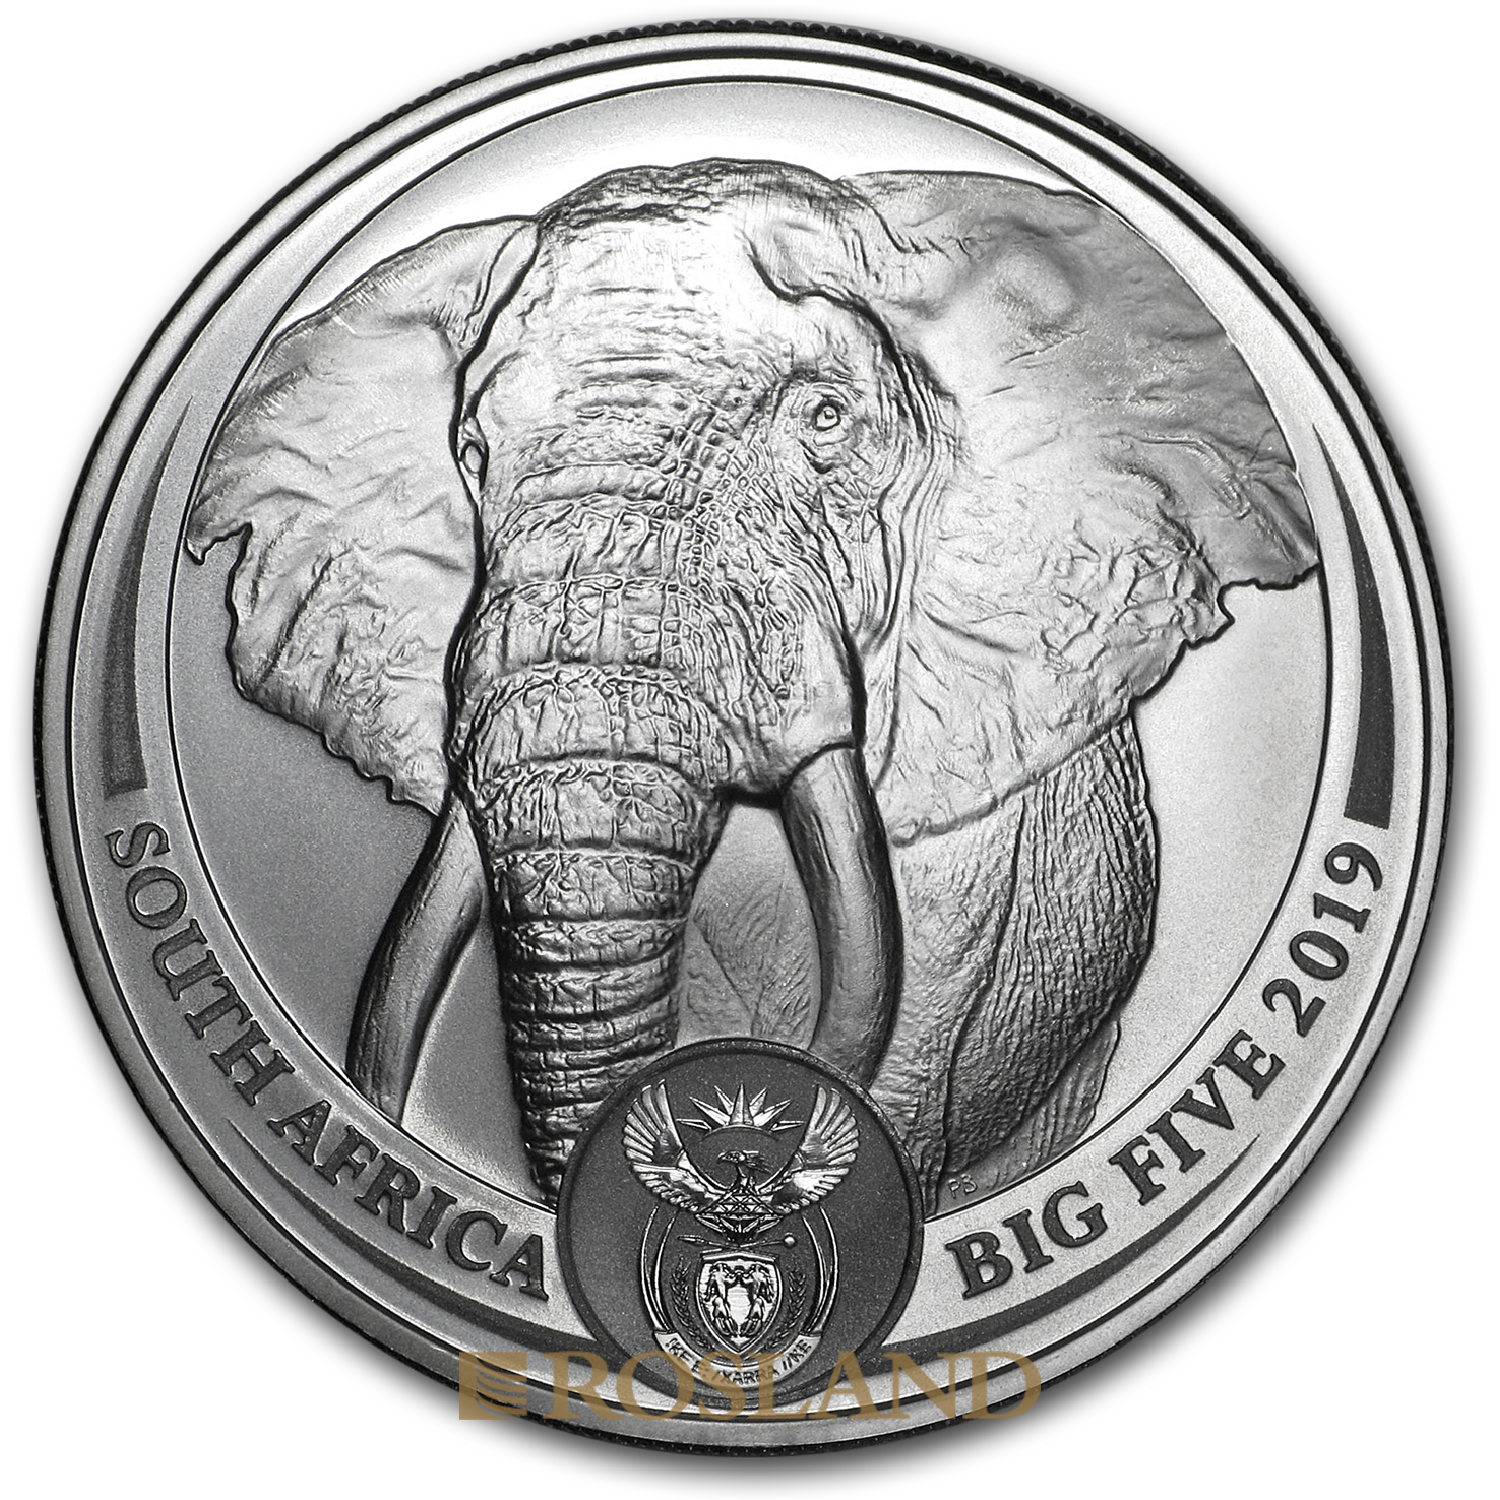 1 Unze Silbermünze Big Five Elefant 2019 (Box, Zertifikat)